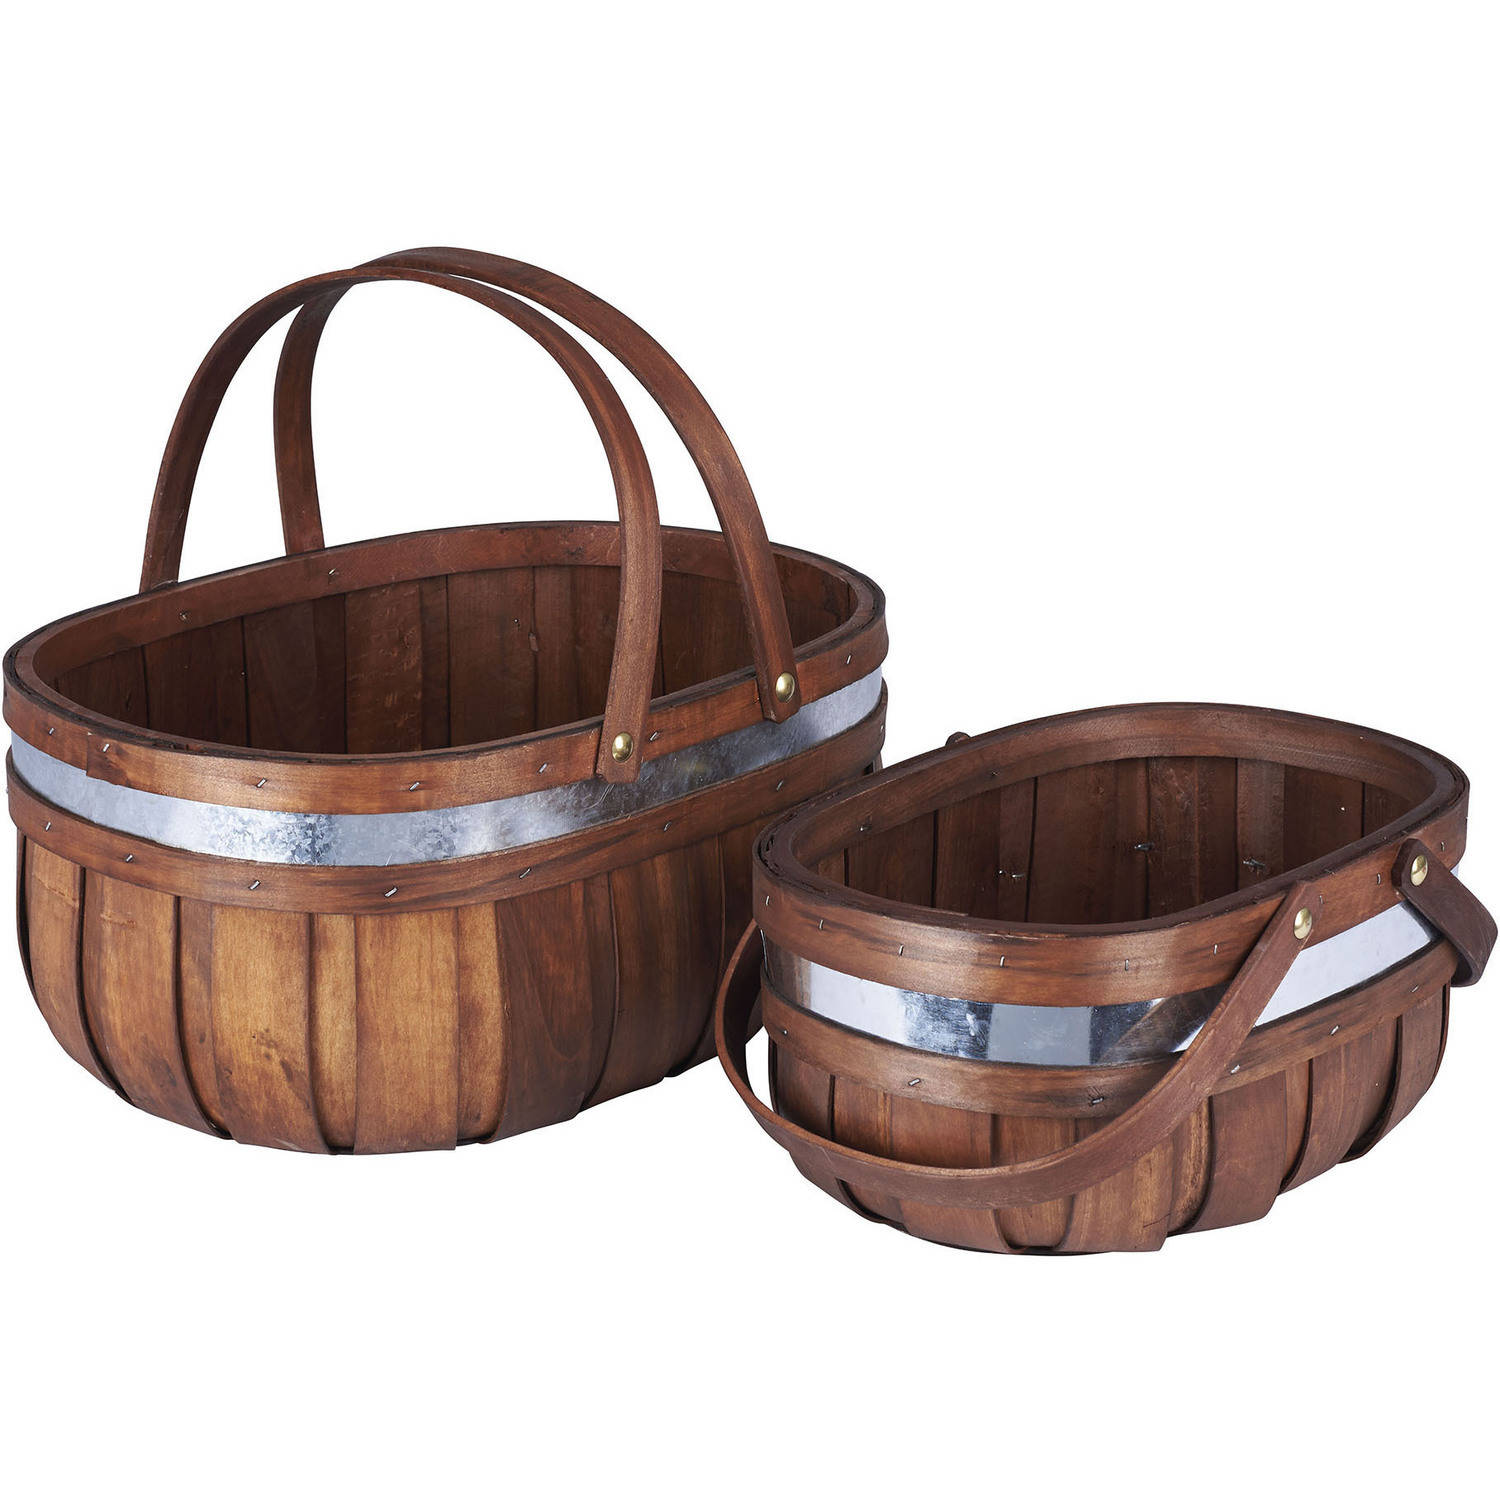 Household Essentials Decorative Cedar Market Basket, 2-Piece Set